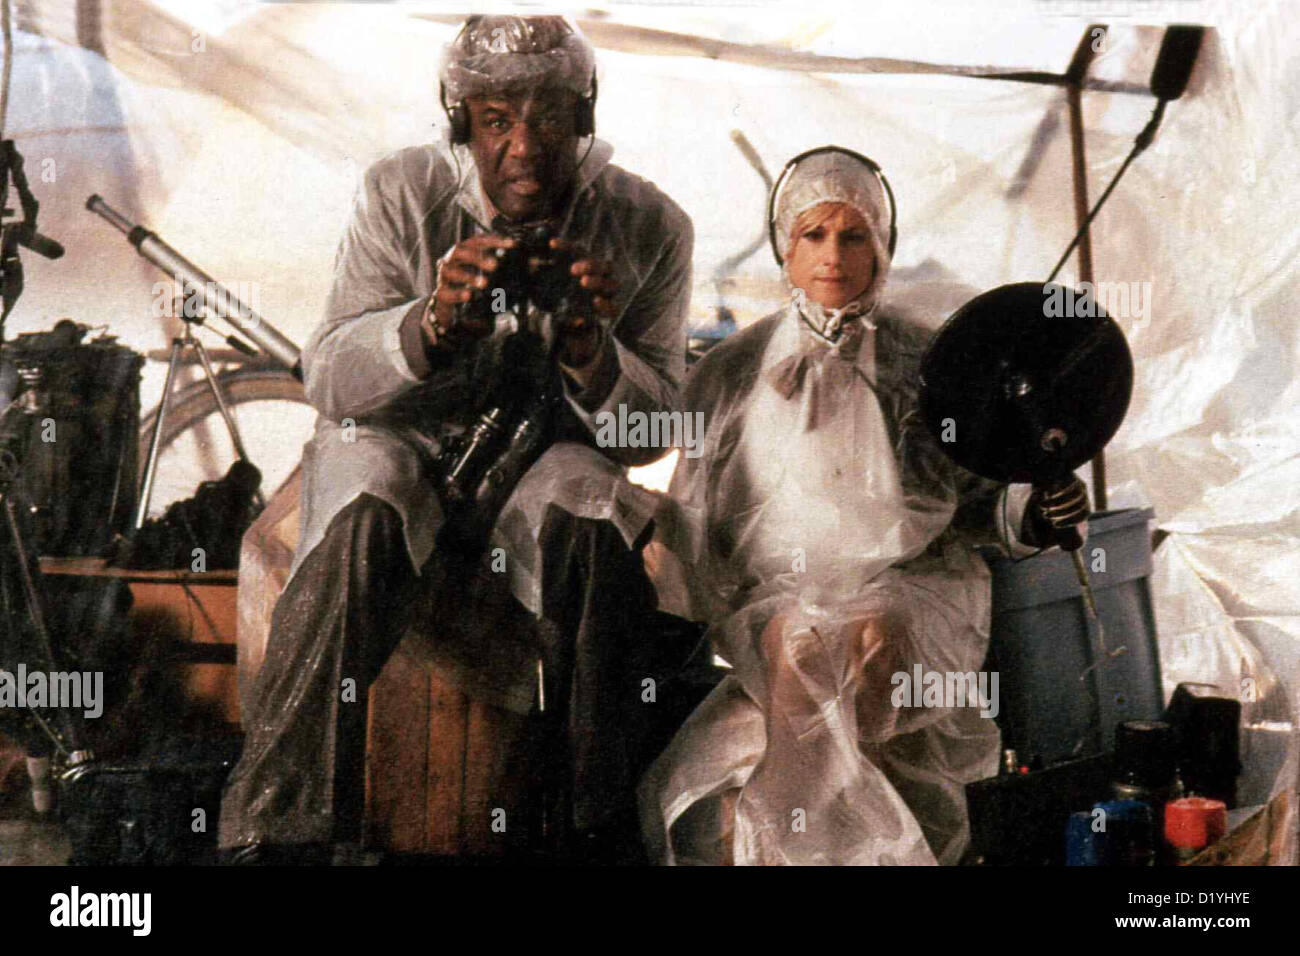 Lebe Lieber Ungewoehnlich  Life Less Ordinary,  Delroy Lindo, Holly Hunter Jackson (Delroy Lindo) und O'Reilly - Stock Image